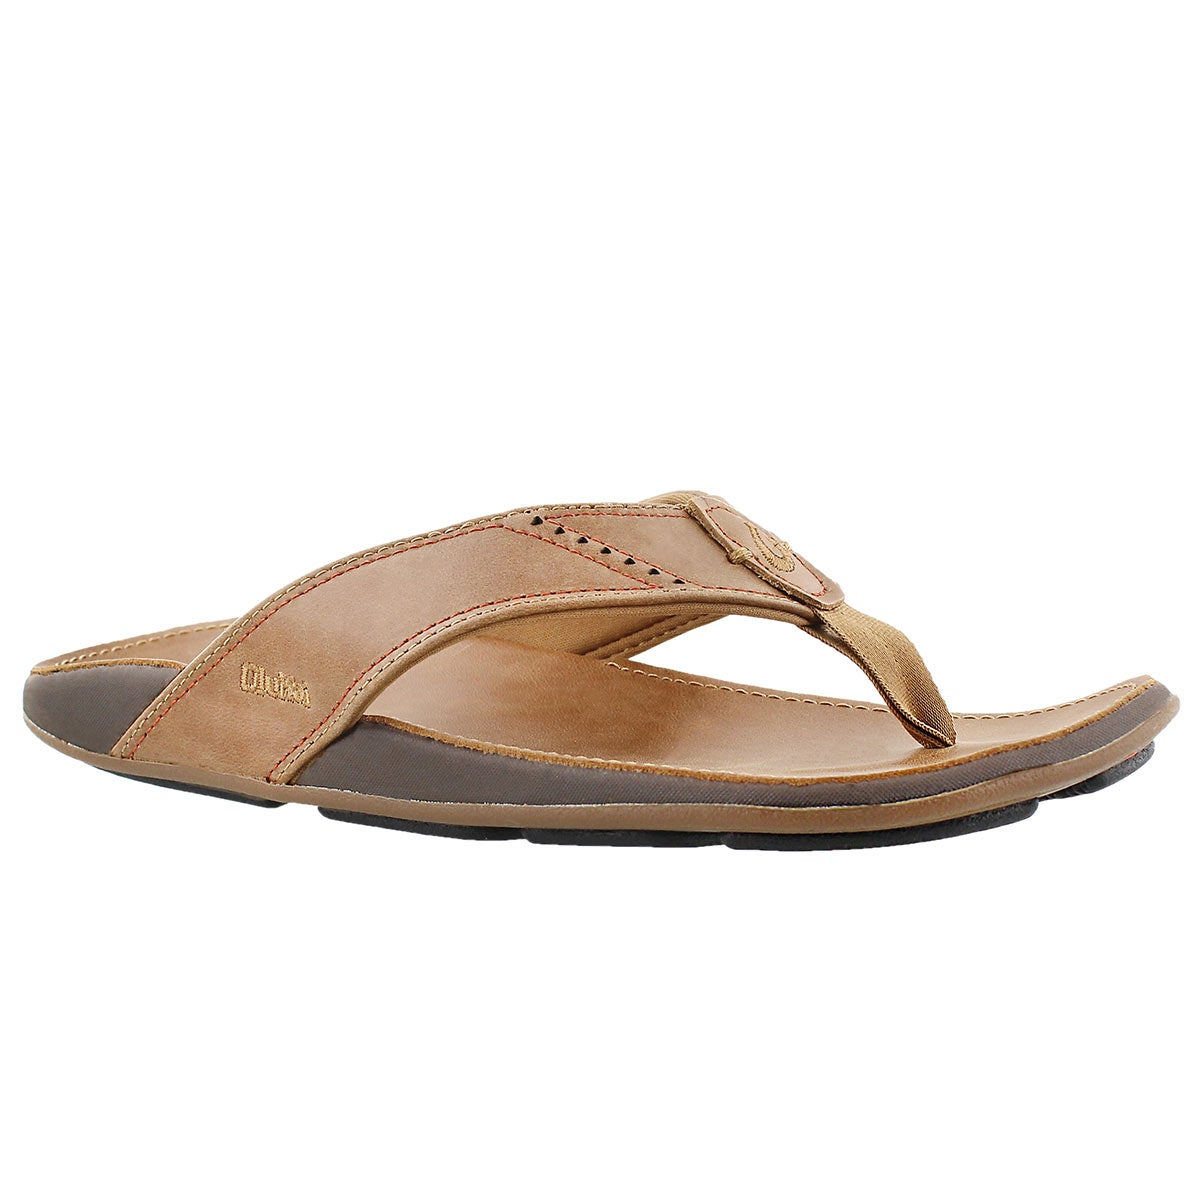 Men's NUI tan thong sandals